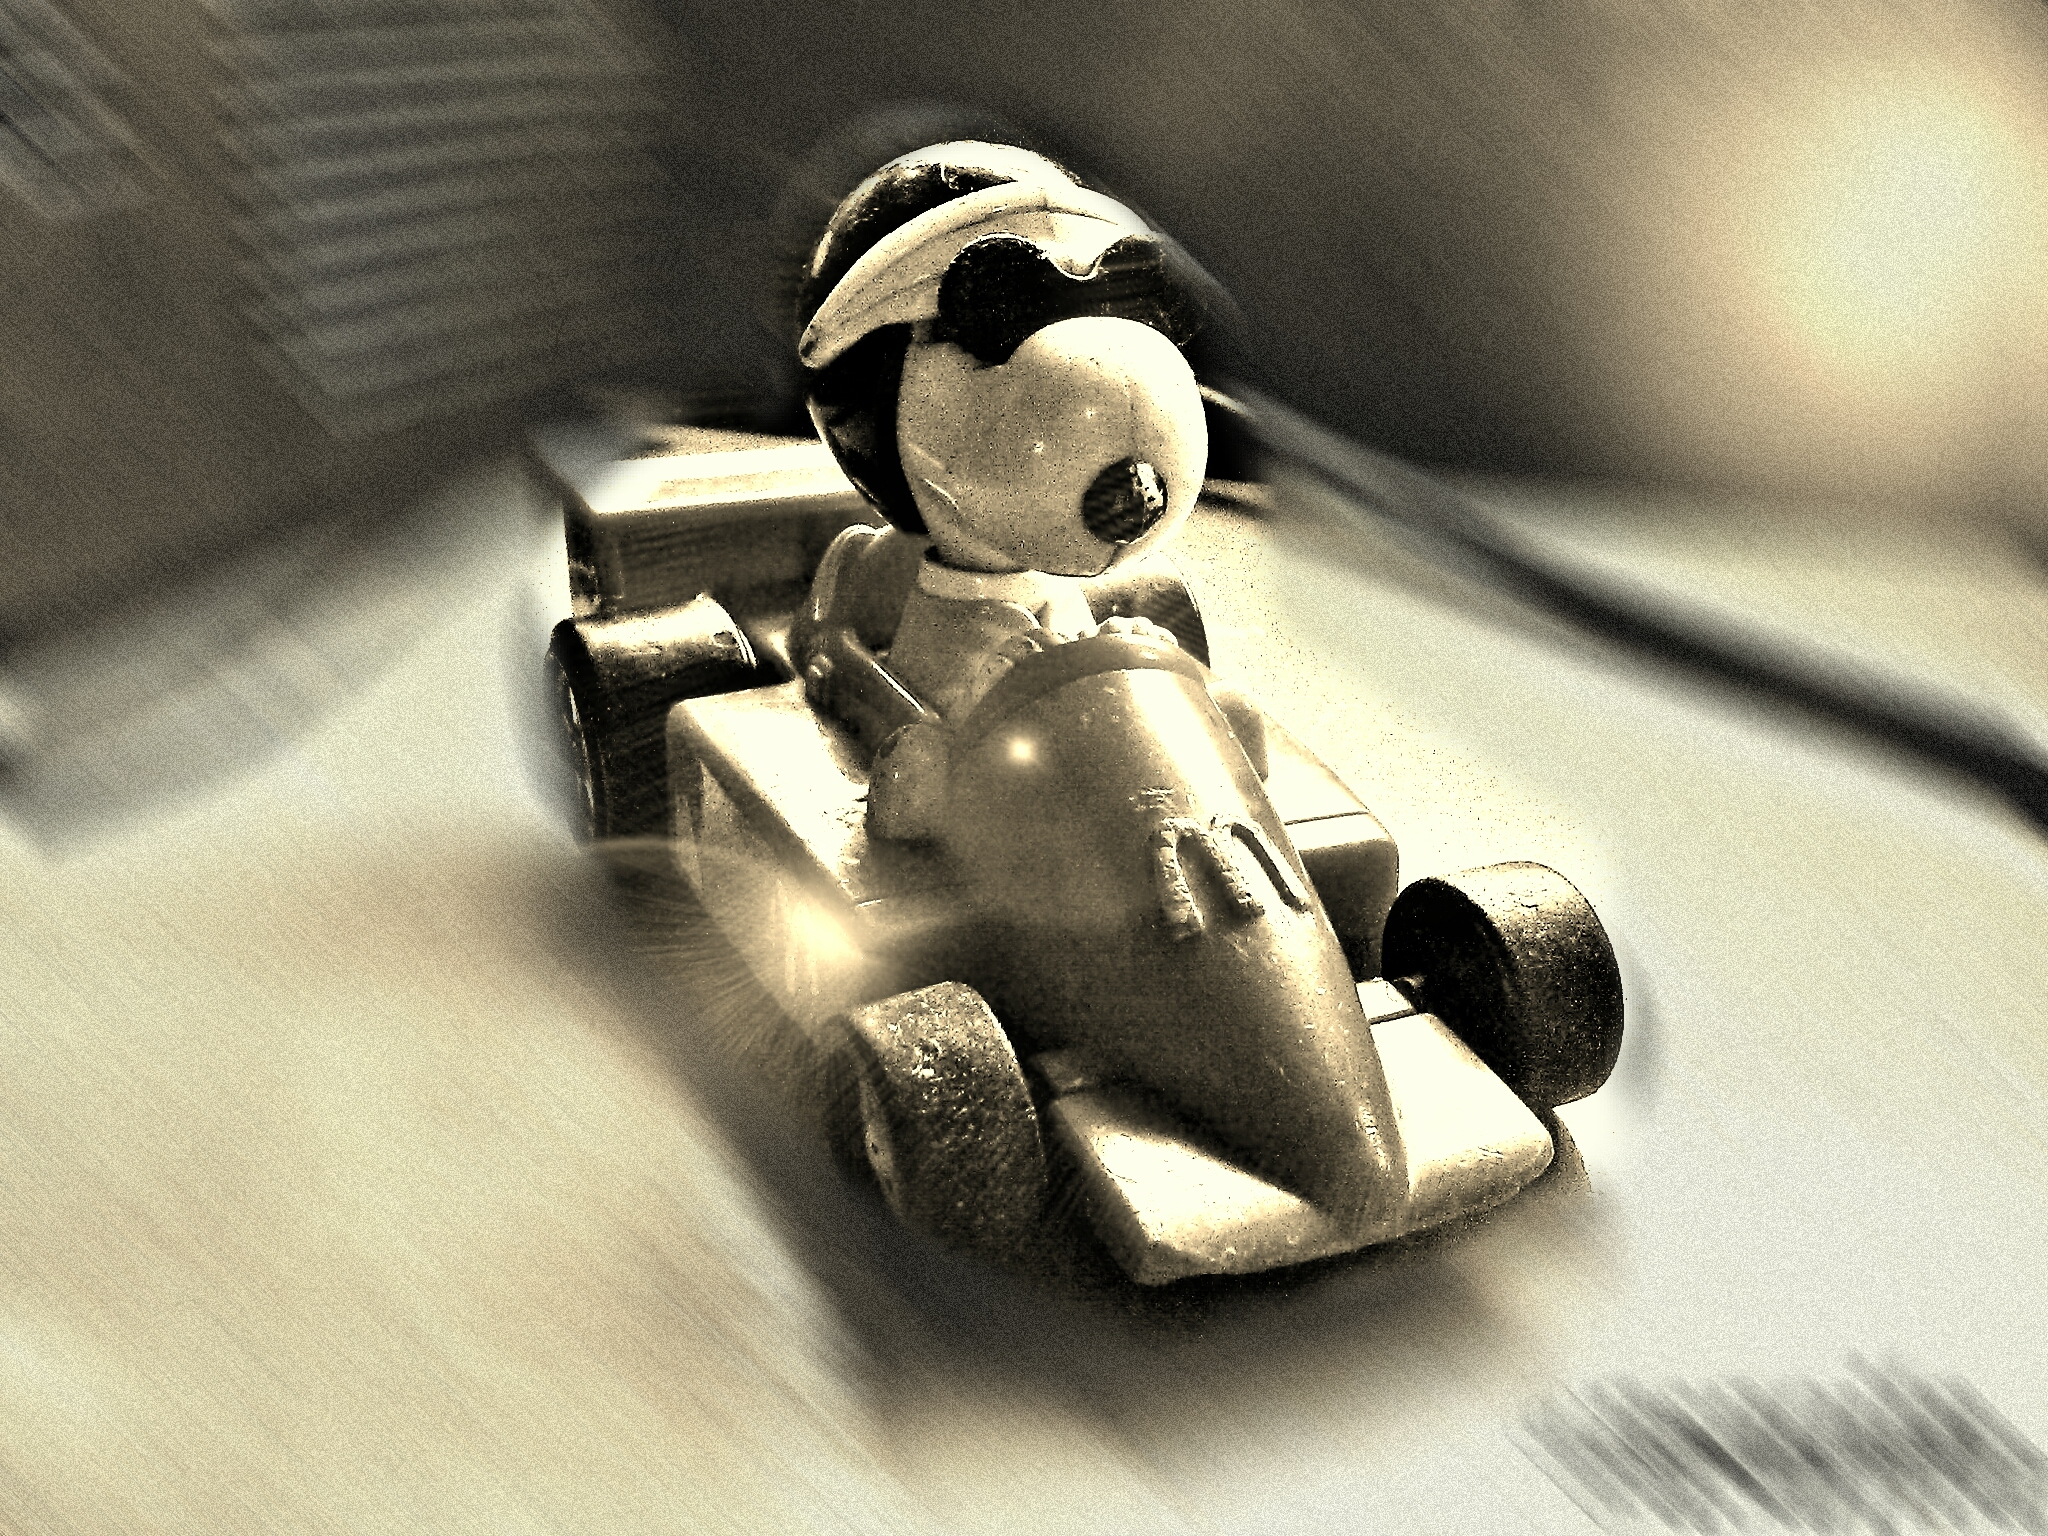 motion blur photo effect